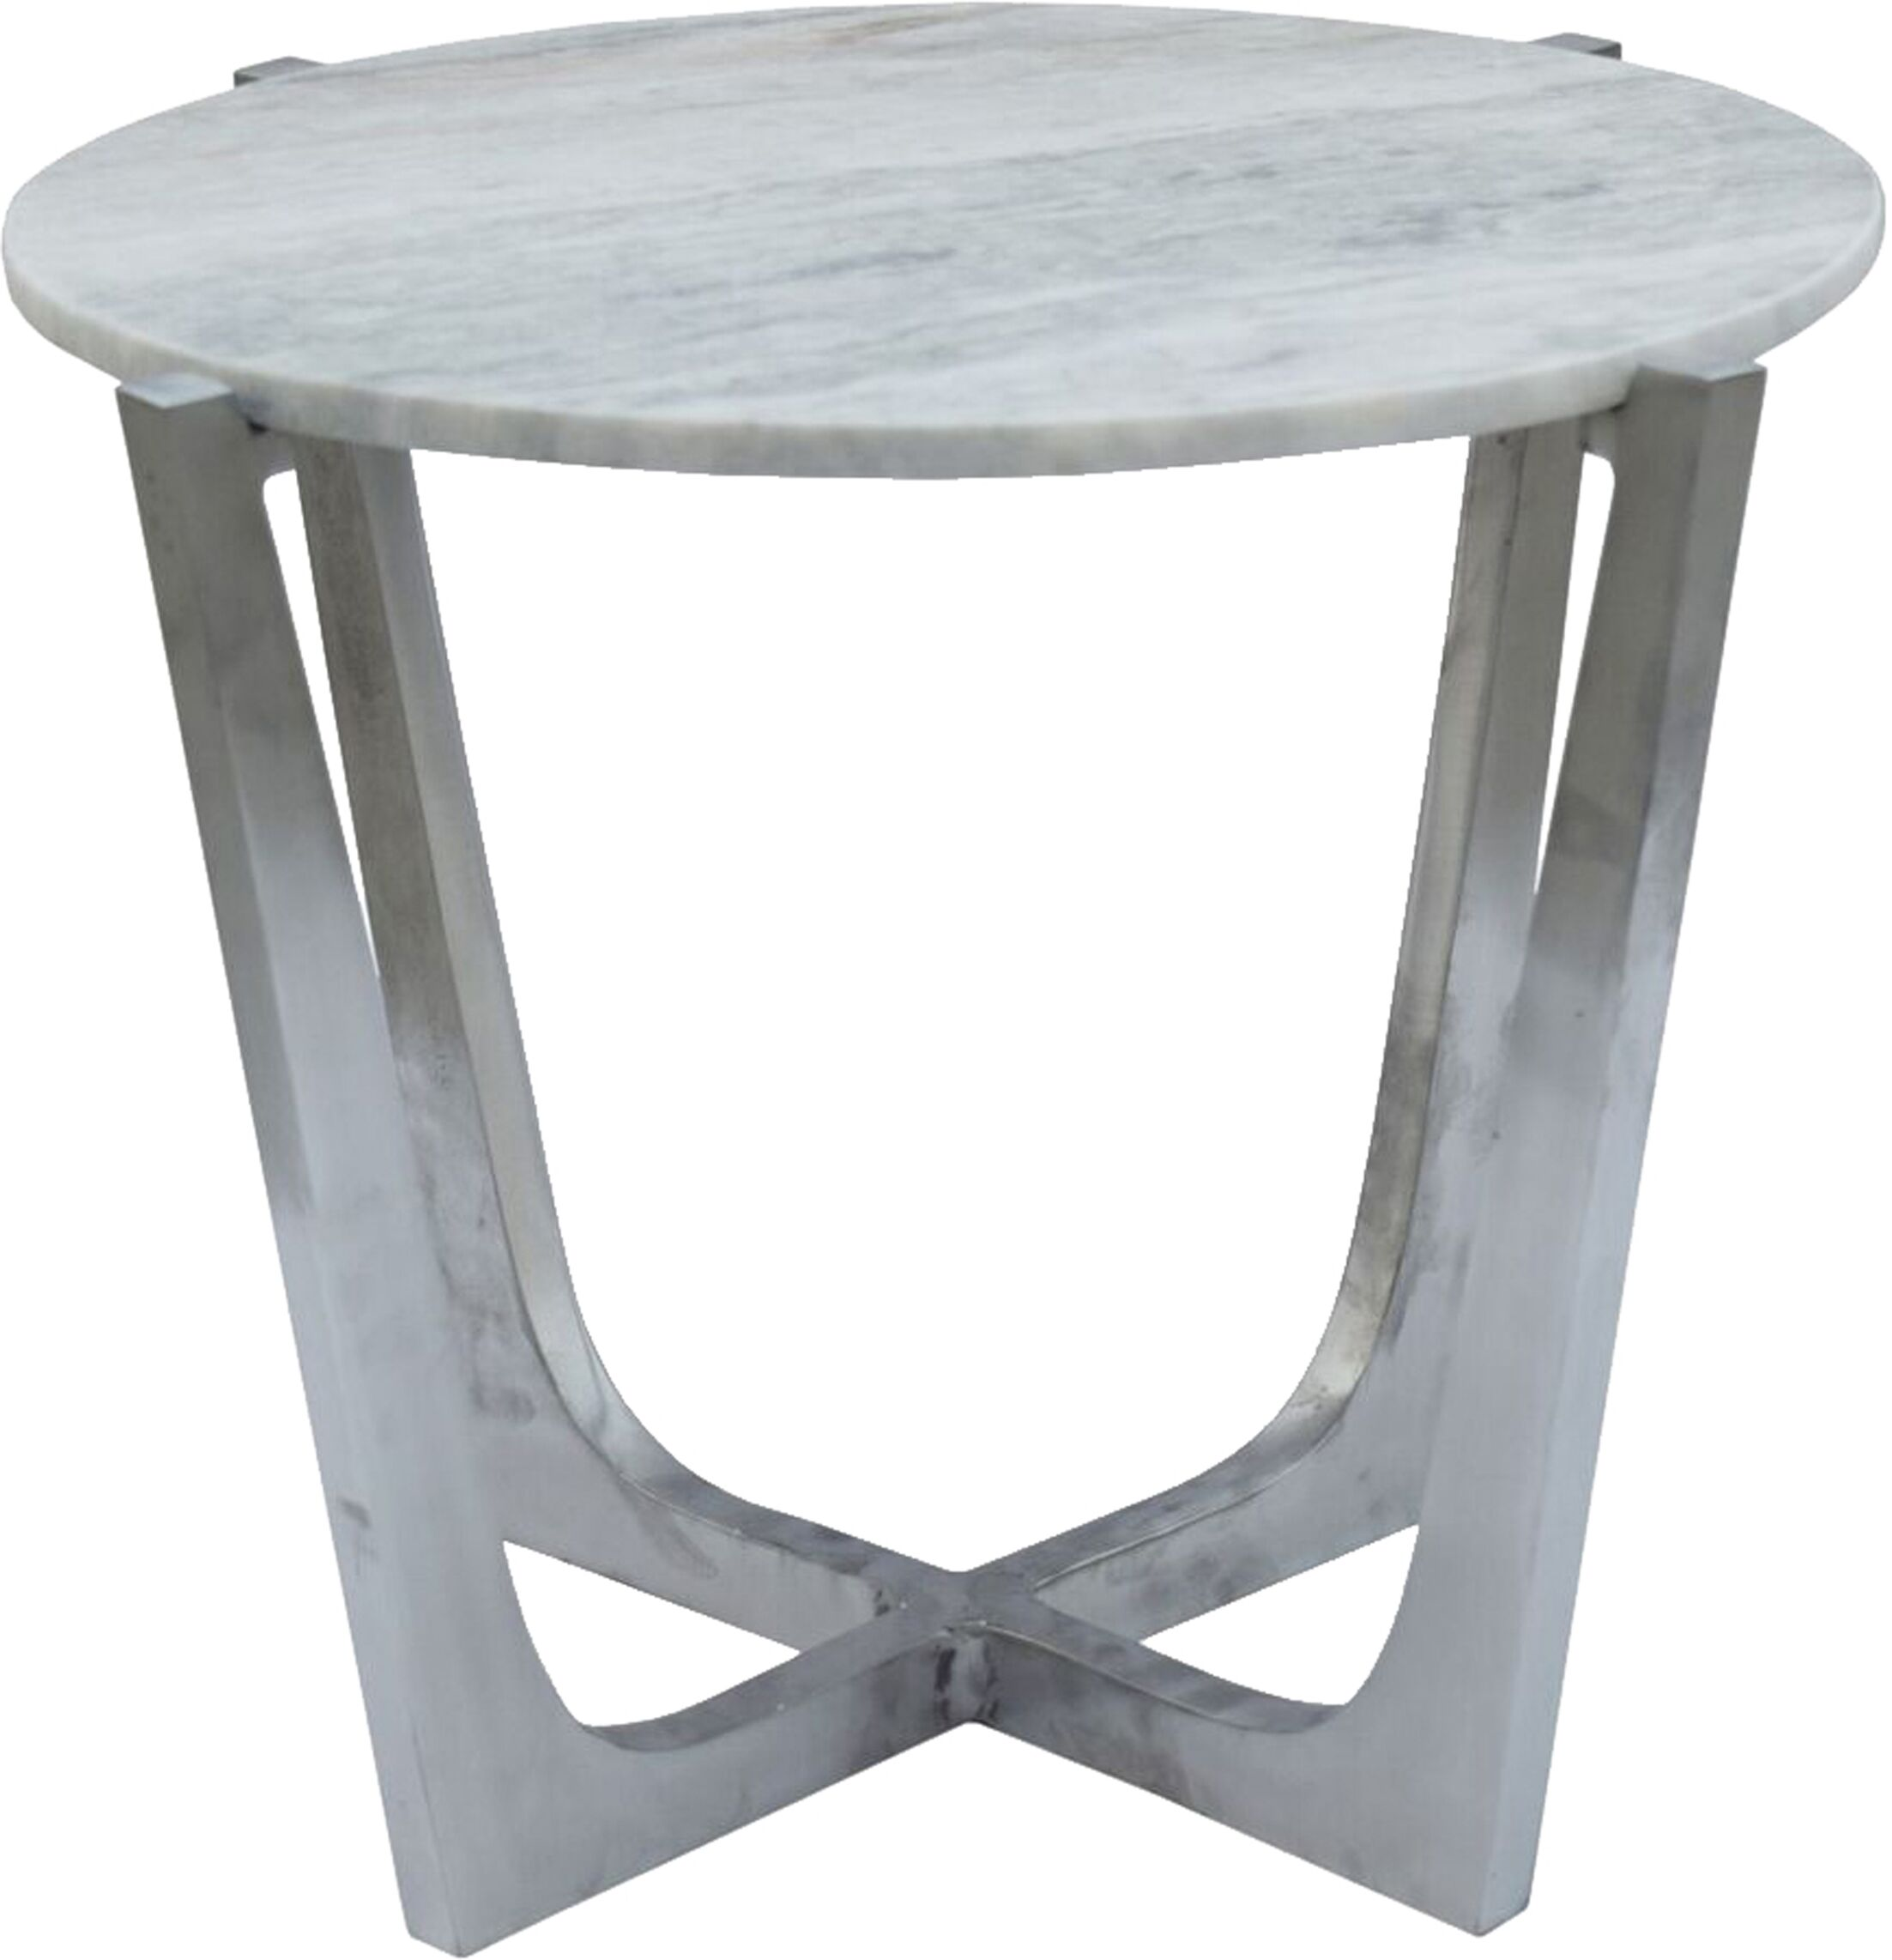 Ogan End Table